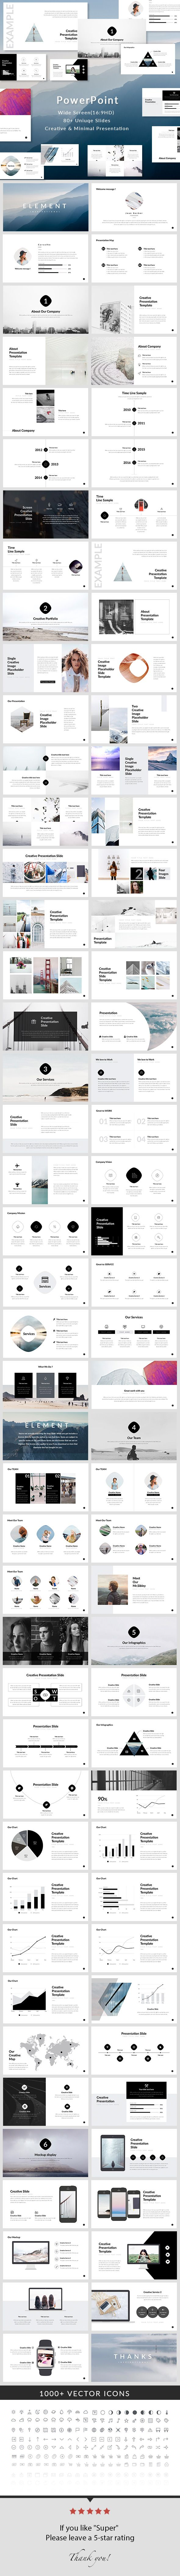 Element - PowerPoint Presentation Template